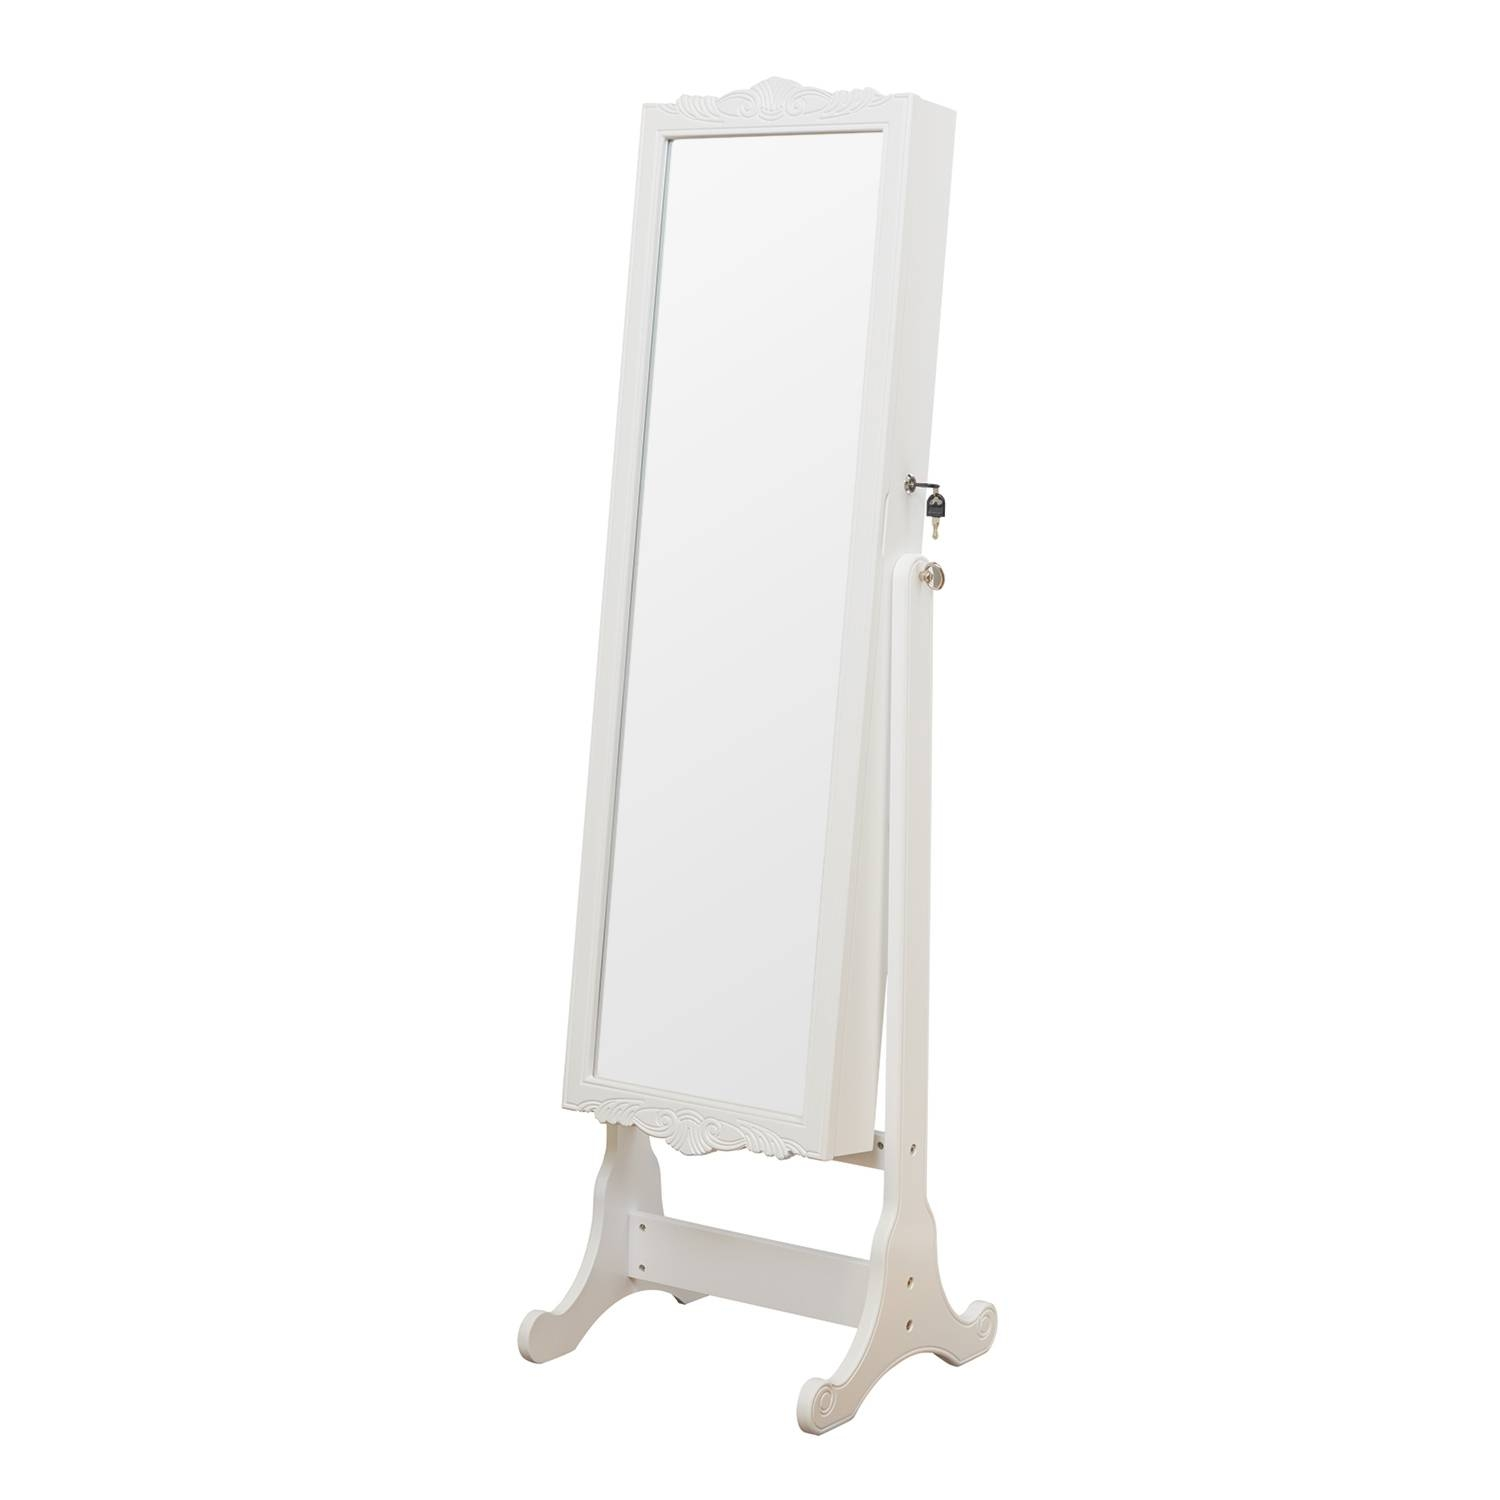 Free Standing Mirror Full Length 61 Cute Interior And Free for Free Standing Mirrors (Image 10 of 25)